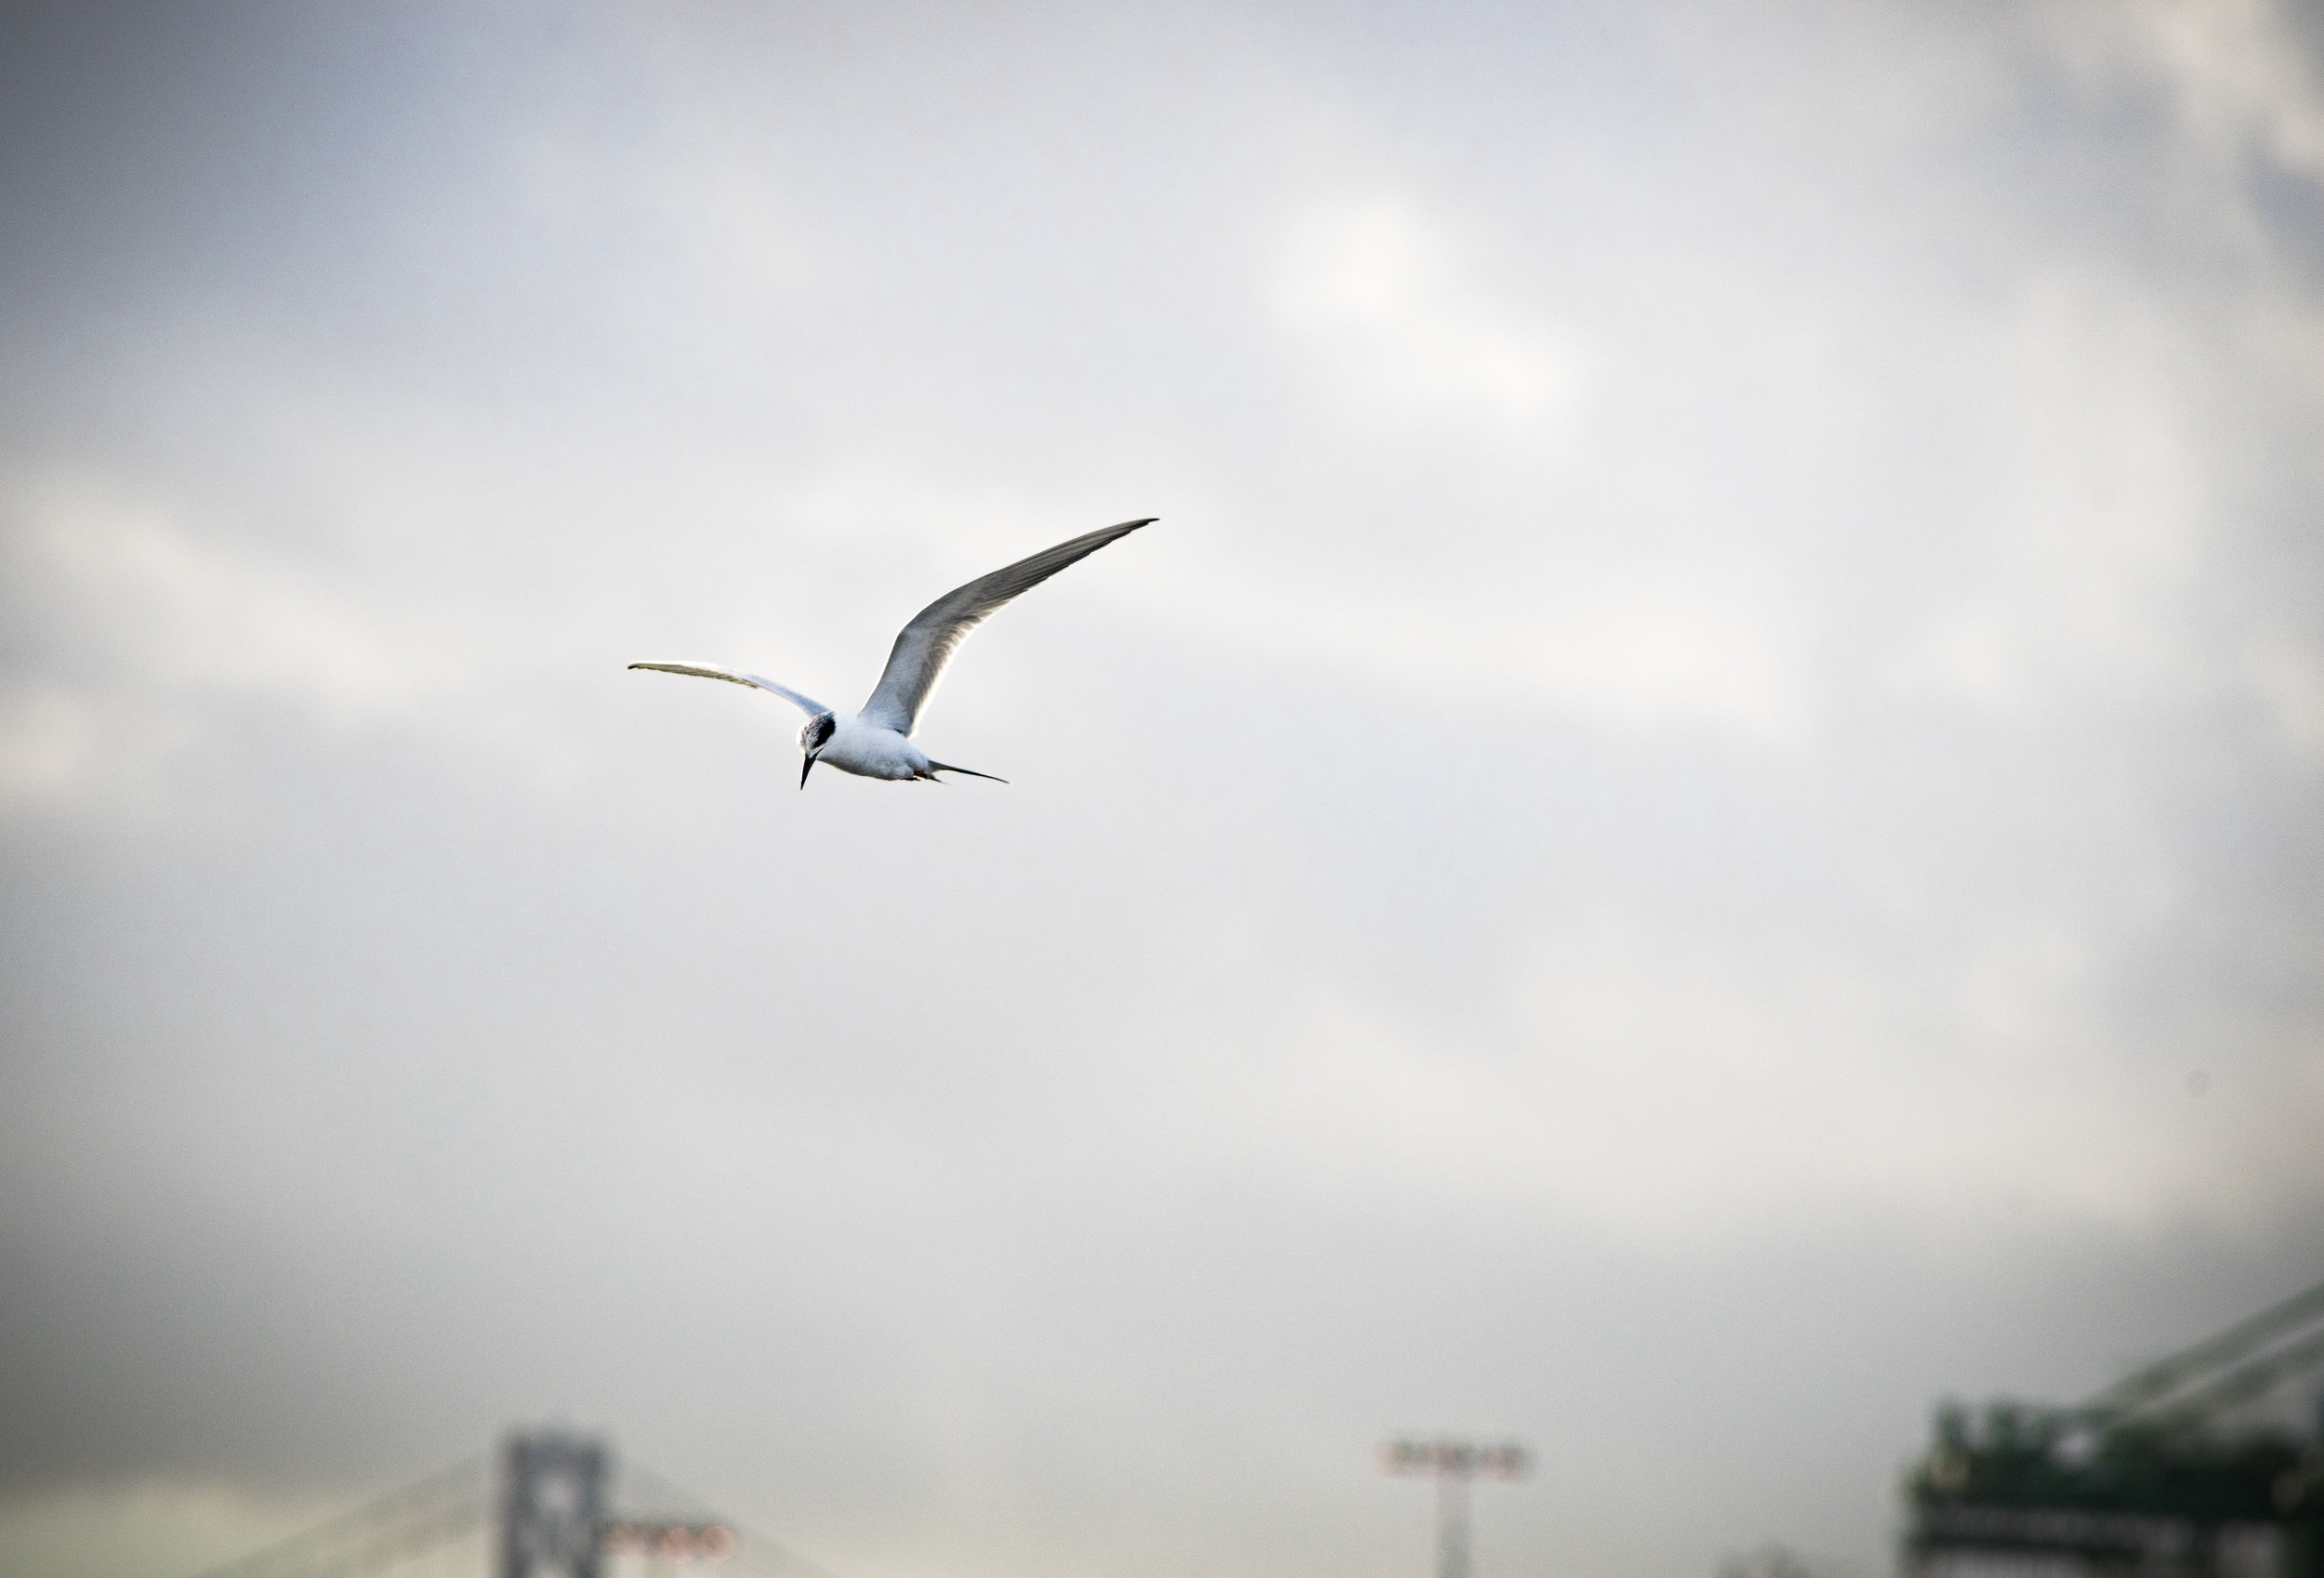 A Forster's Tern hunts at Middle Harbor Shoreline Park. Photo by Tony Iwane.